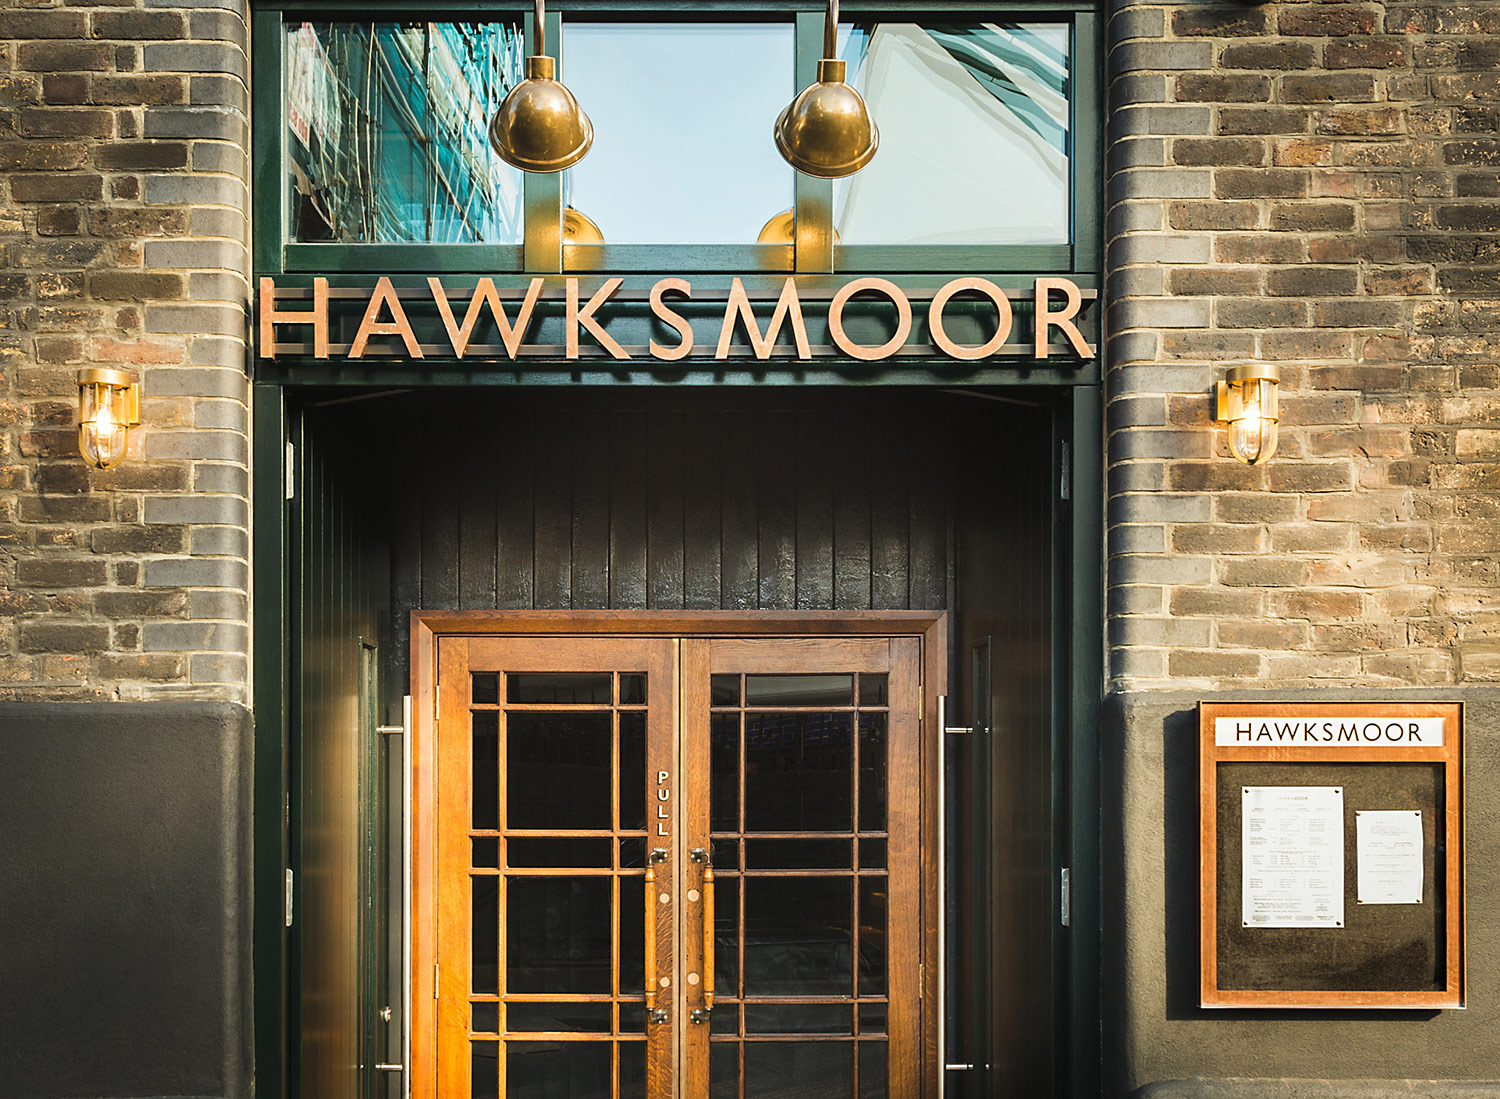 The front doors of Hawksmoor, Borough